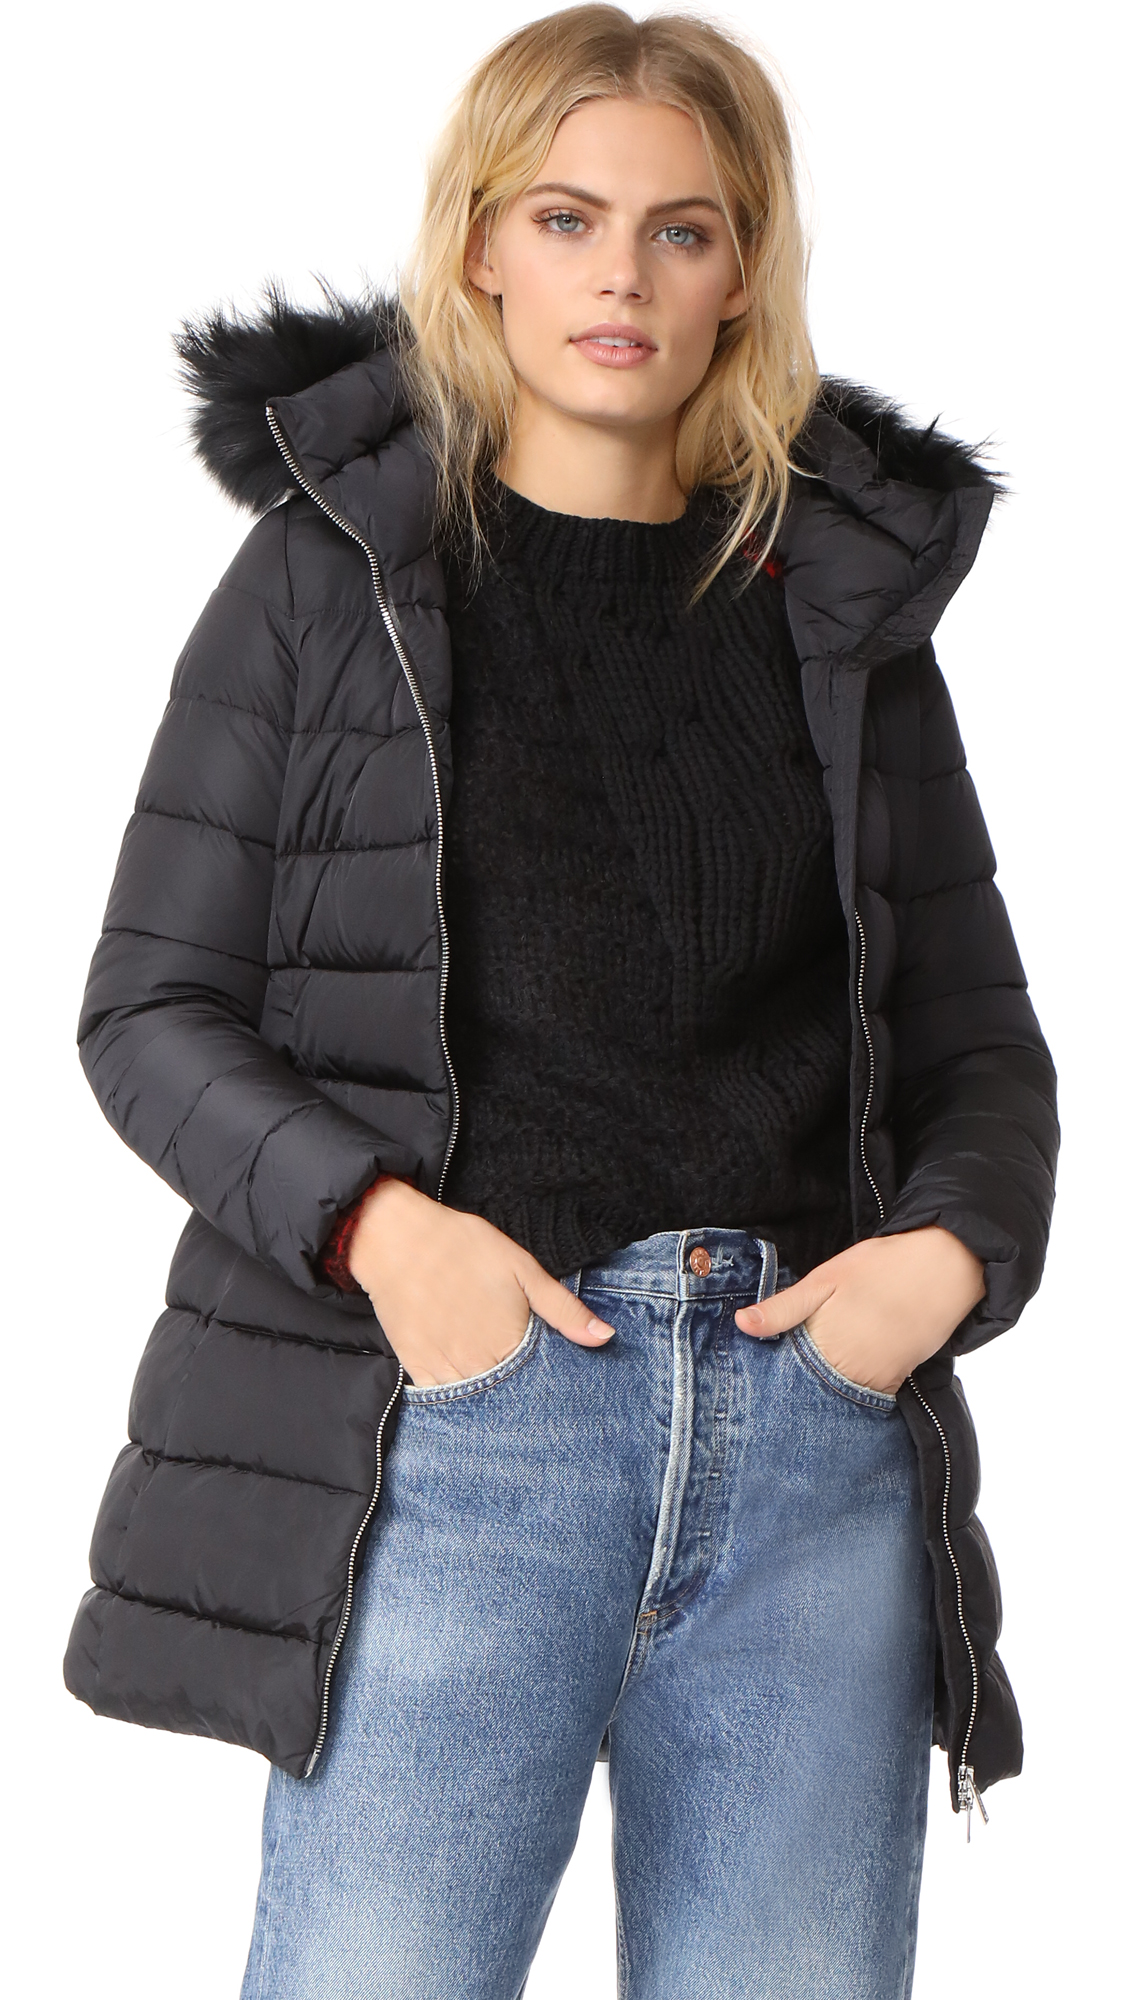 Add Down Down Coat with Fur - Black